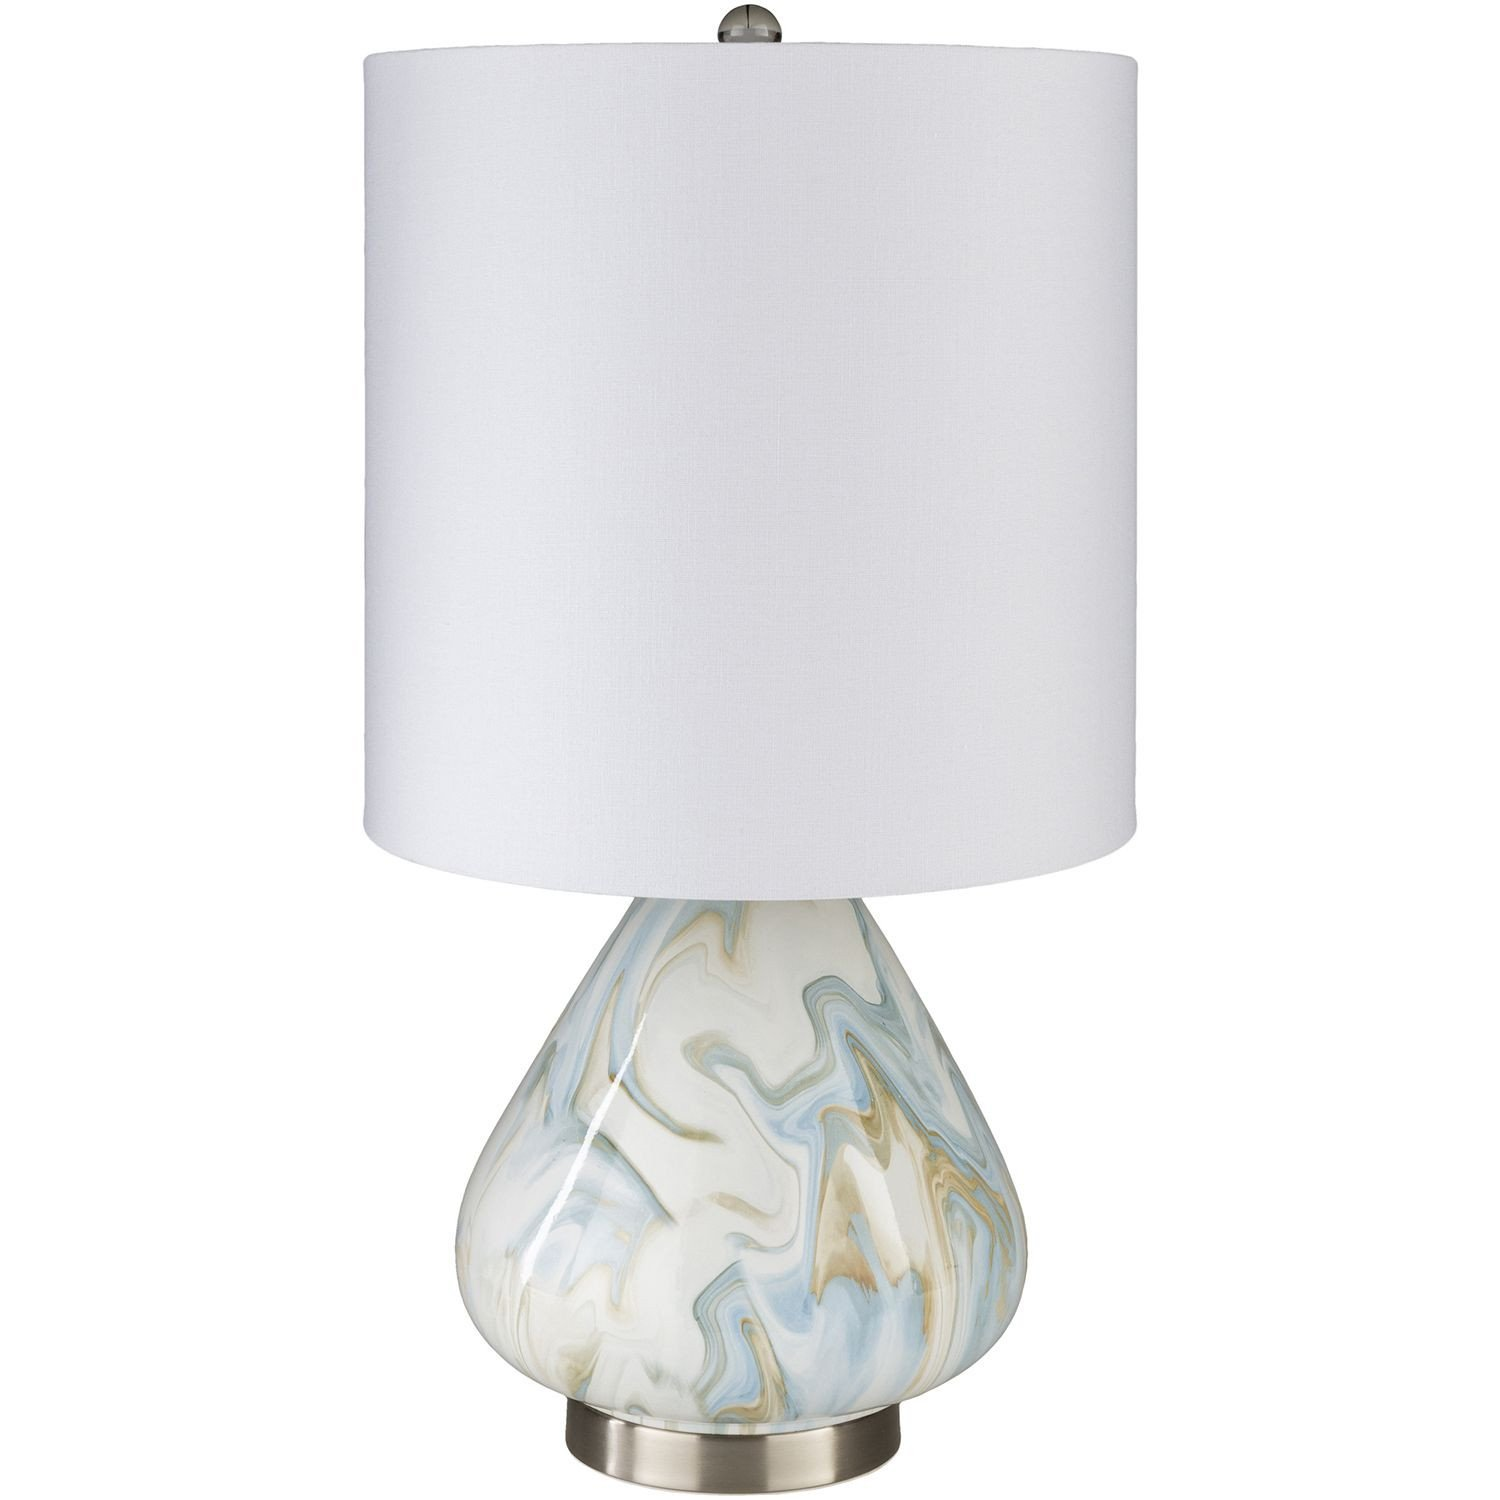 Blue Table Lamps Bedroom Luxury Surya orleans White and Blue E Light Table Lamp In 2019